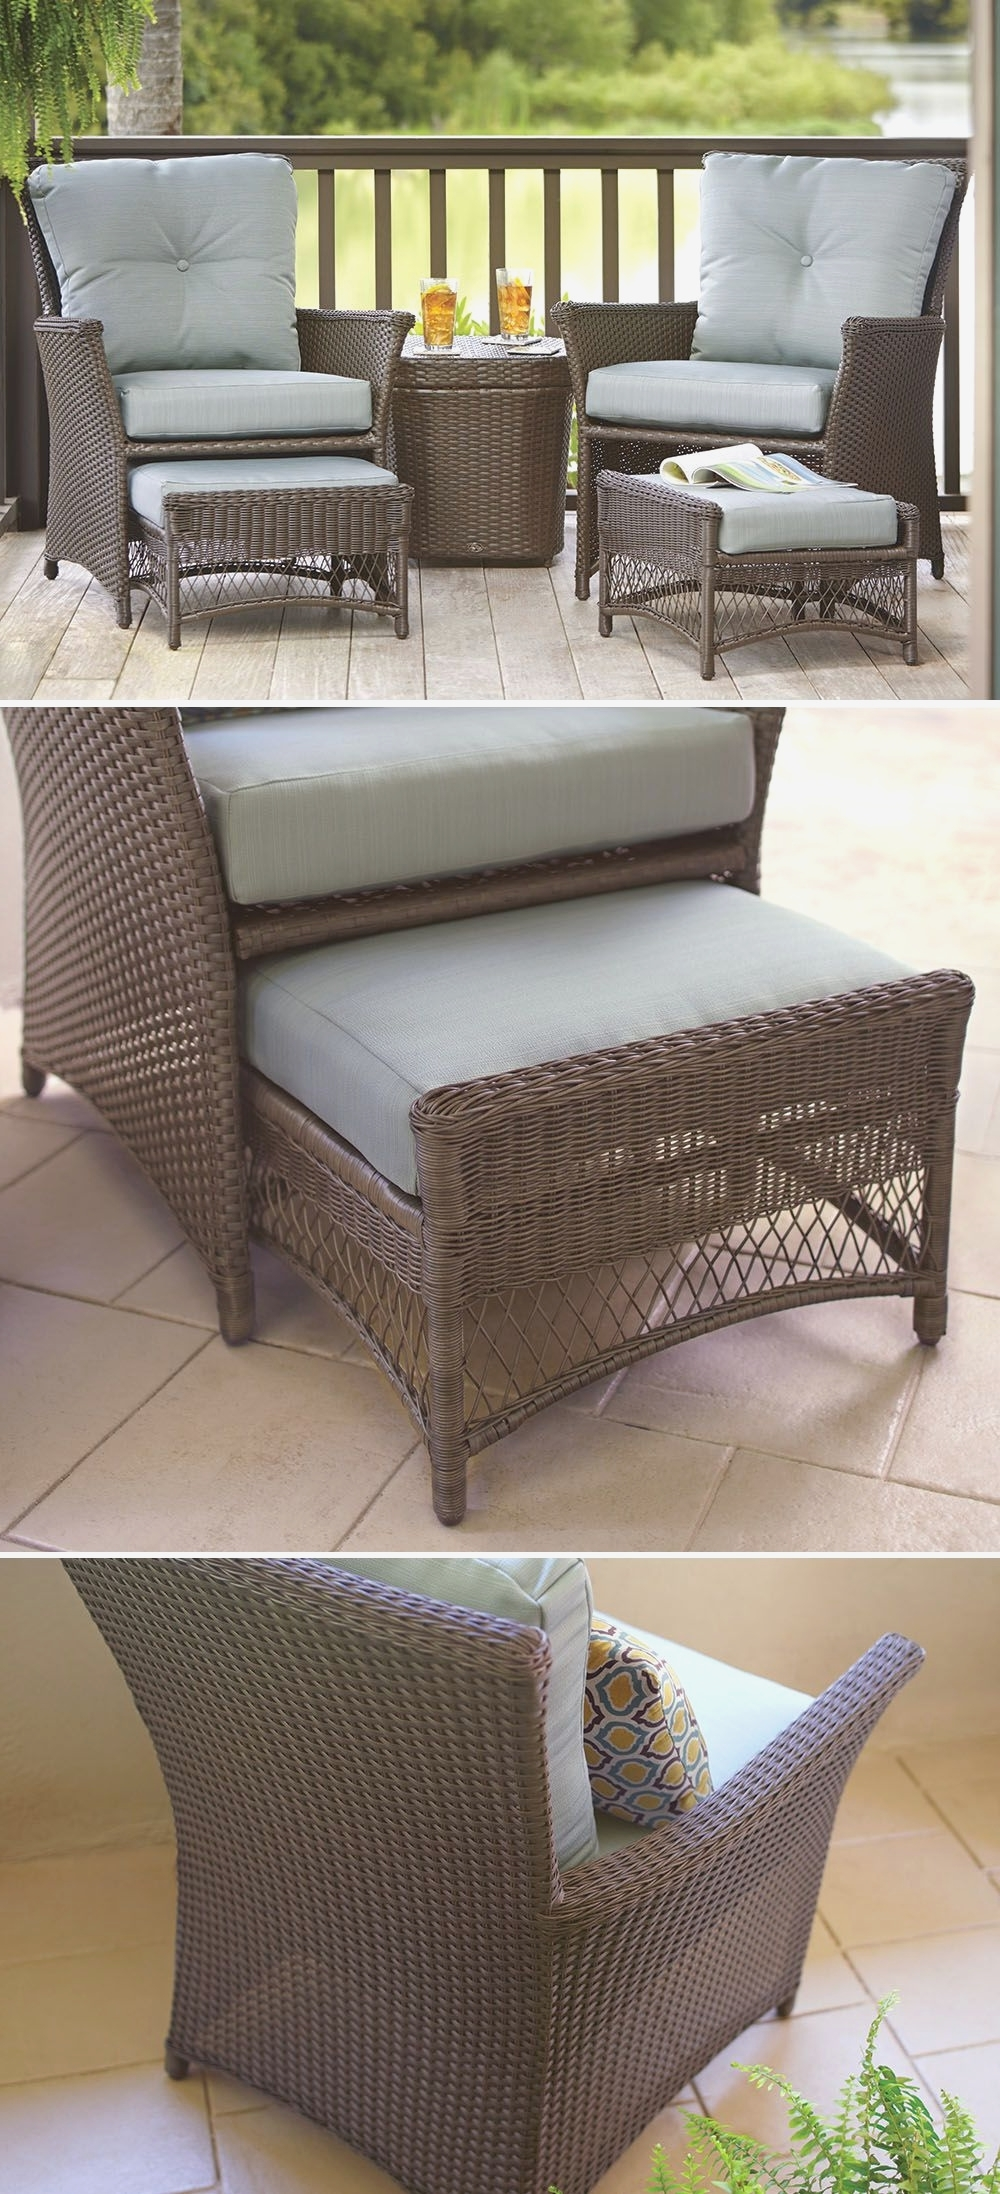 Preferred Graceful Small Outdoor Patio Set Metal Furniture Sets For Spaces In Patio Conversation Sets For Small Spaces (View 1 of 20)